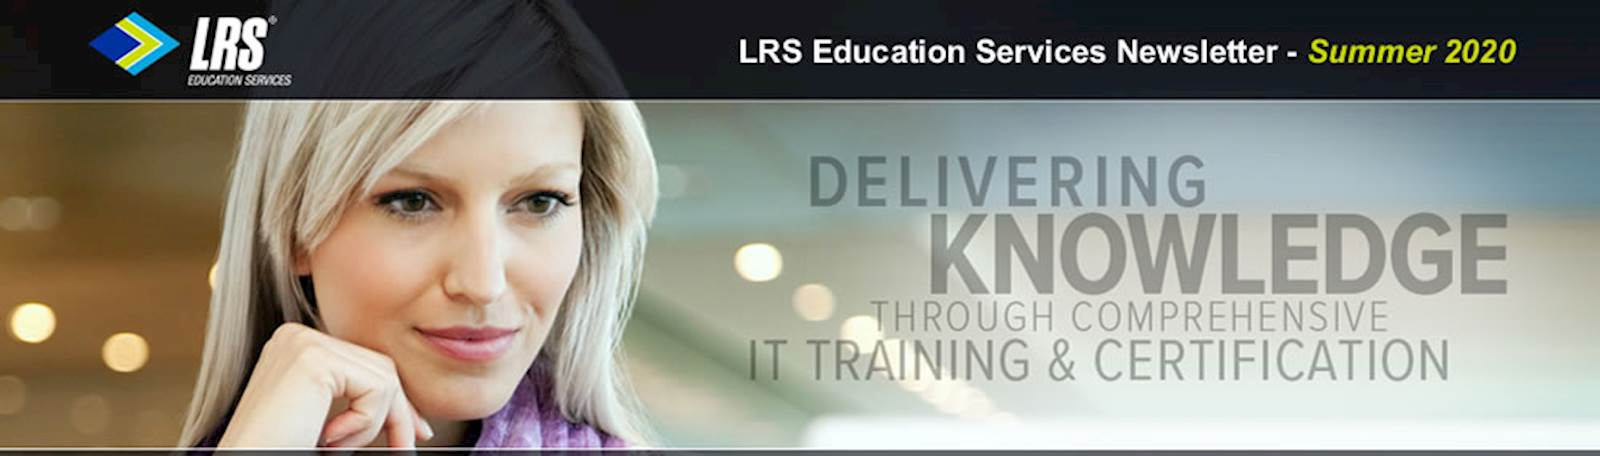 LRS Education Services Newsletter